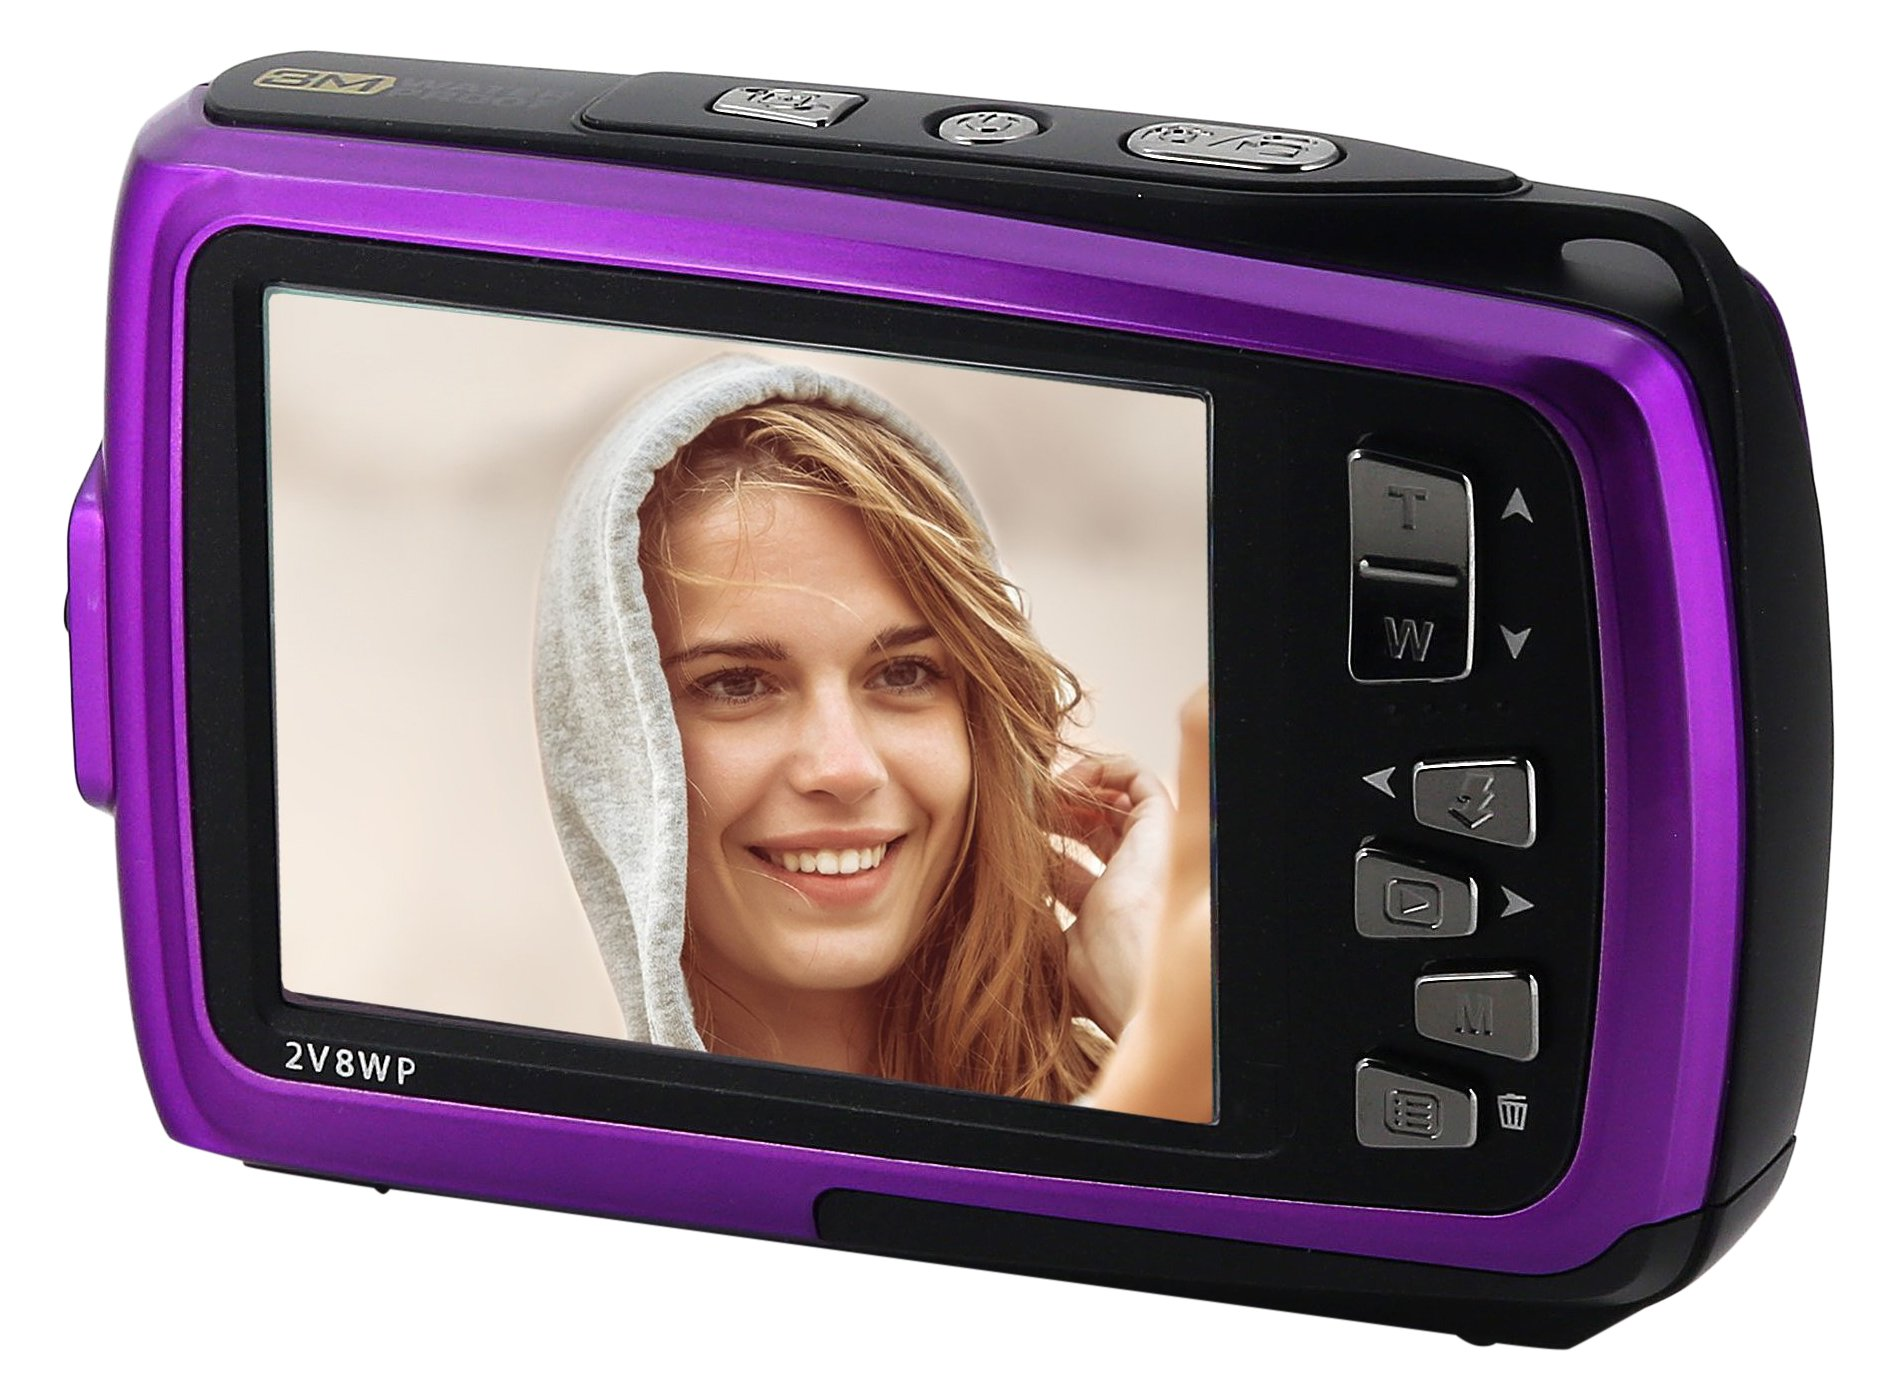 Coleman Duo2 18.0 MP HD Underwater Digital & Video Camera (Waterproof to 10 ft.) with Dual LCD Screens, 2.7'', Purple (2V8WP-P)